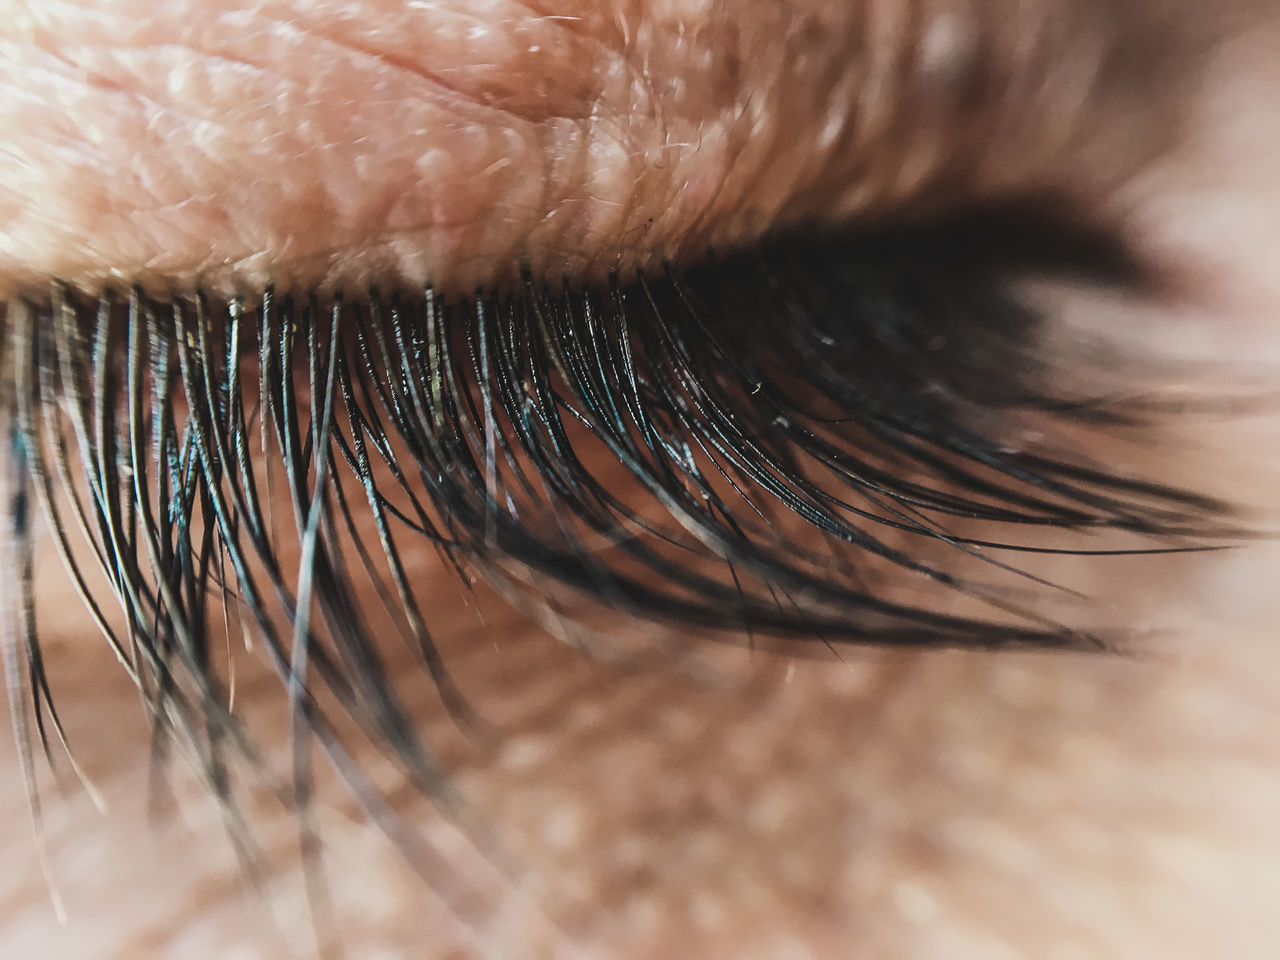 close-up, beauty, make-up, eyelash, human eye, human body part, one person, people, adult, adults only, day